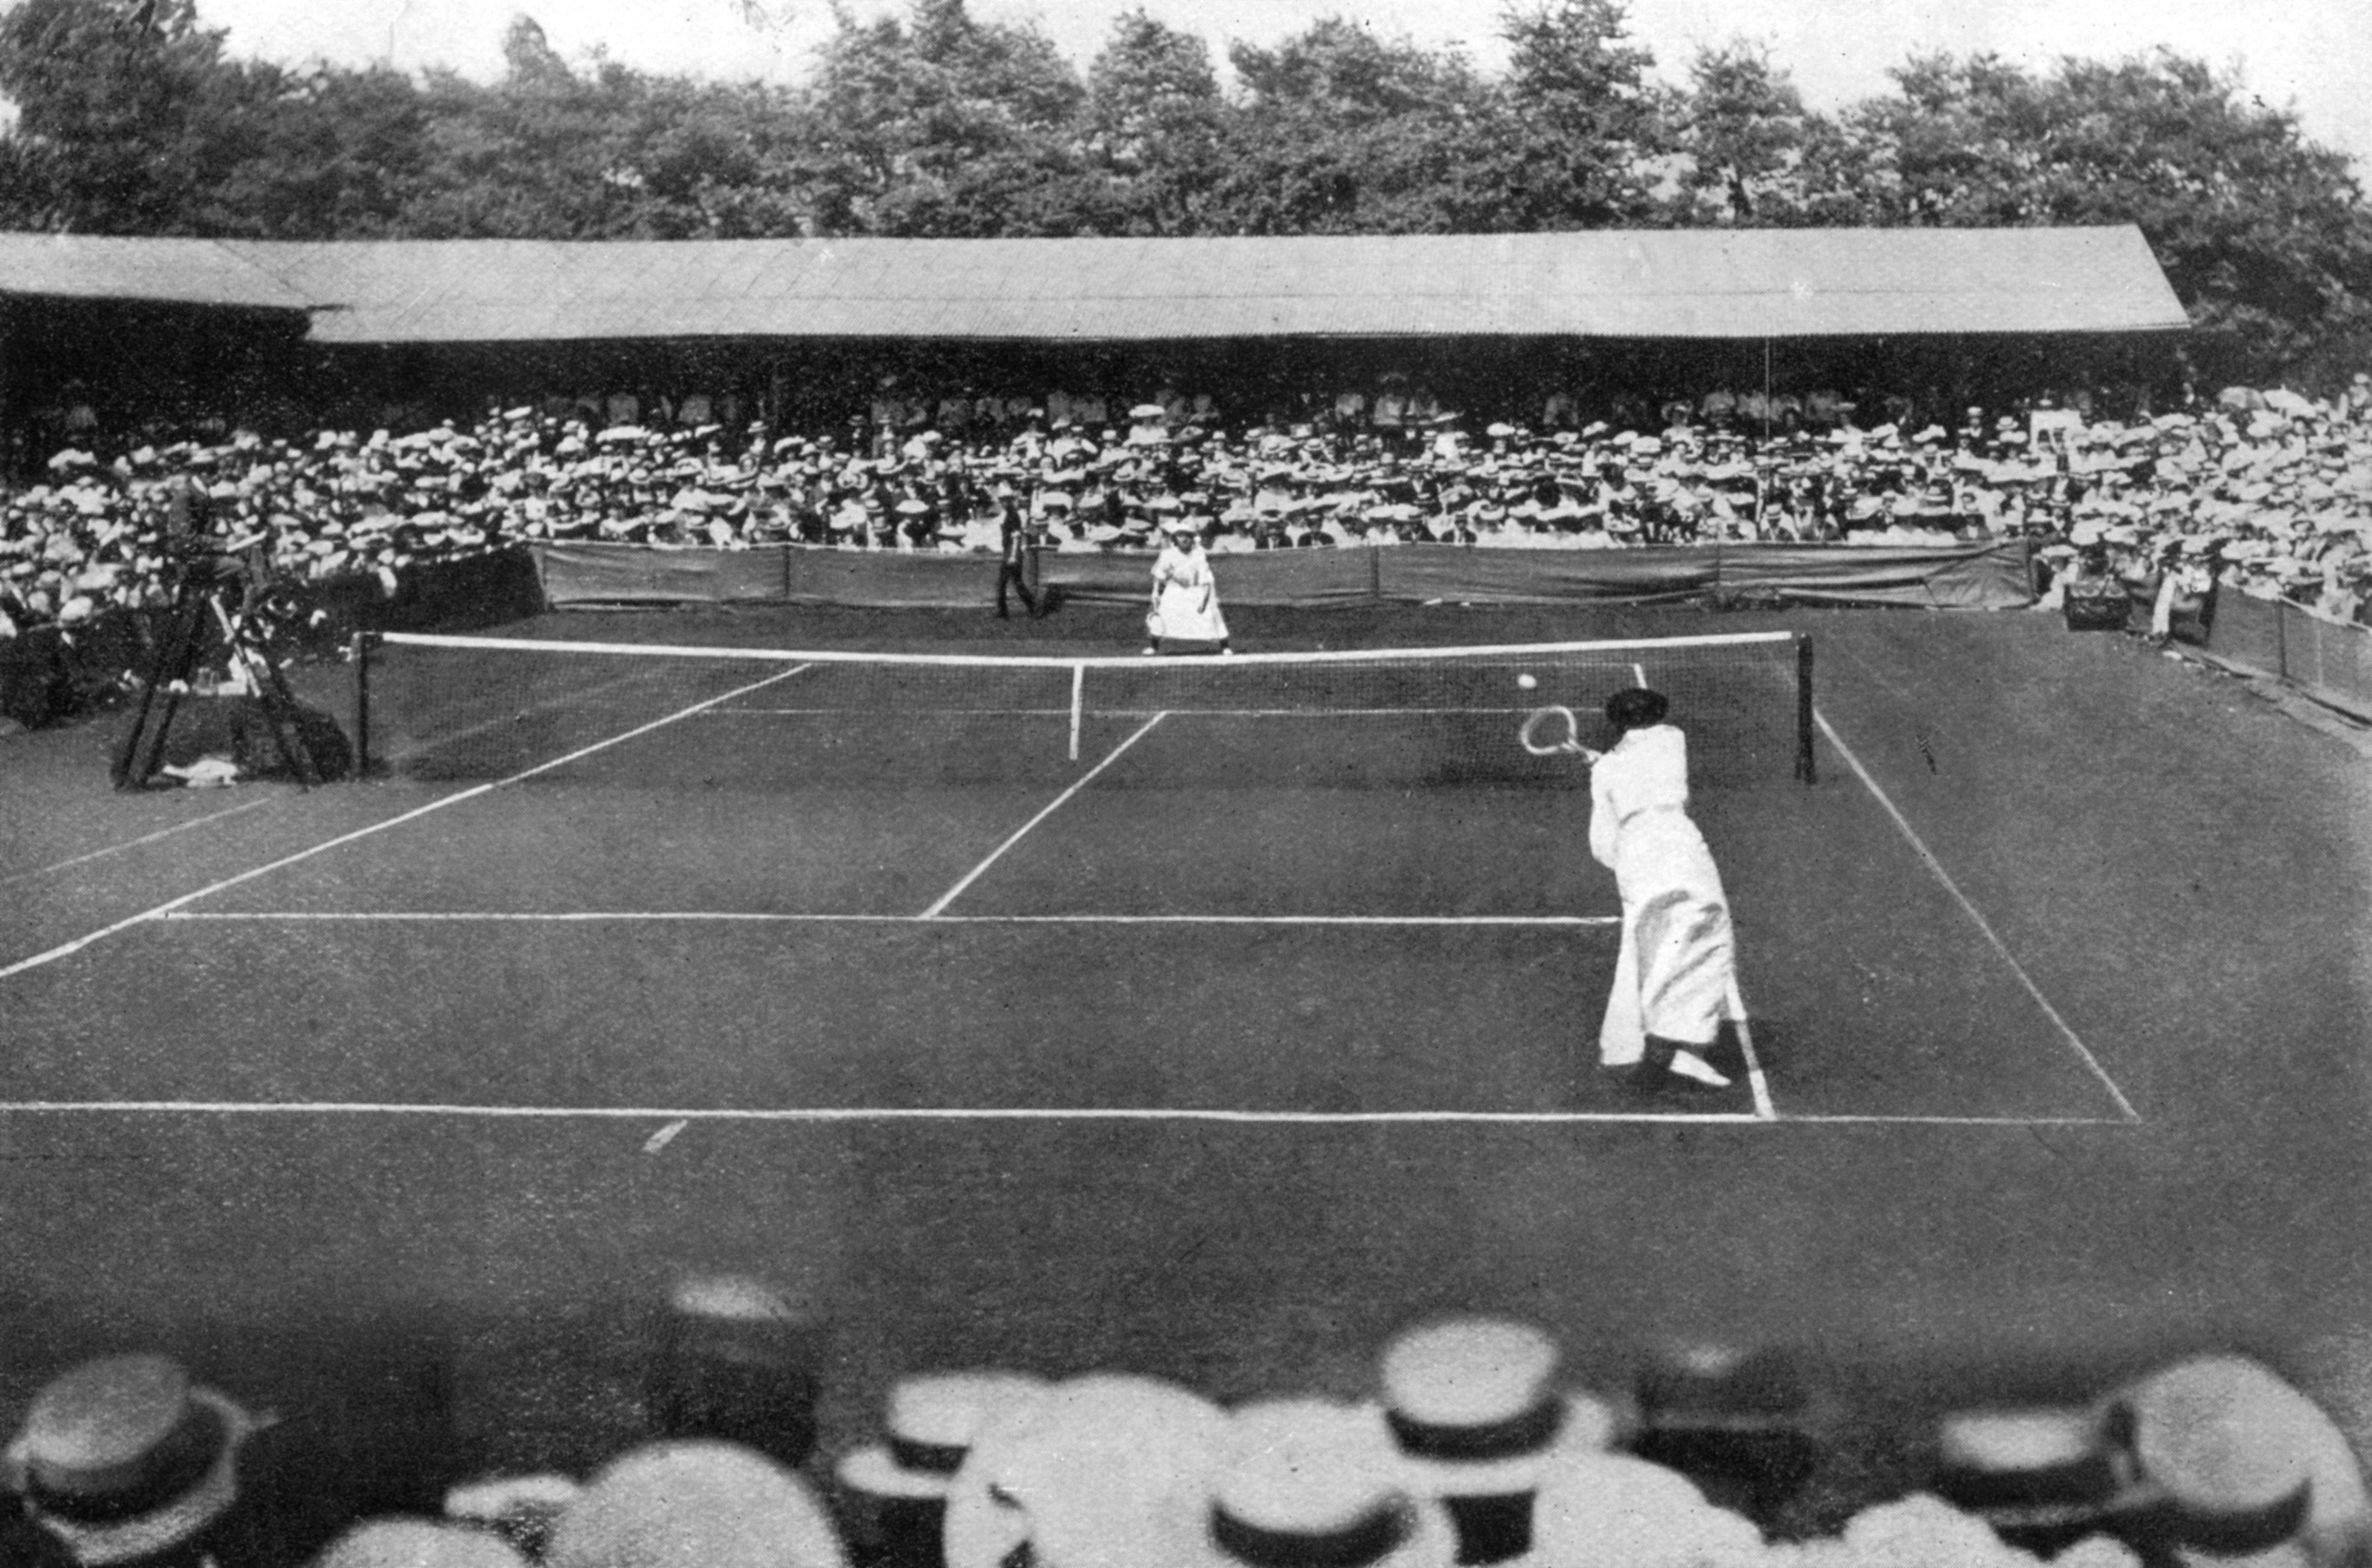 tennis in america The united states national lawn tennis association formed in 1884, recognizing the growth of the game with a national championship tournament in men's singles and doubles a women's singles tournament was added in 1887 and women's doubles in 1890.